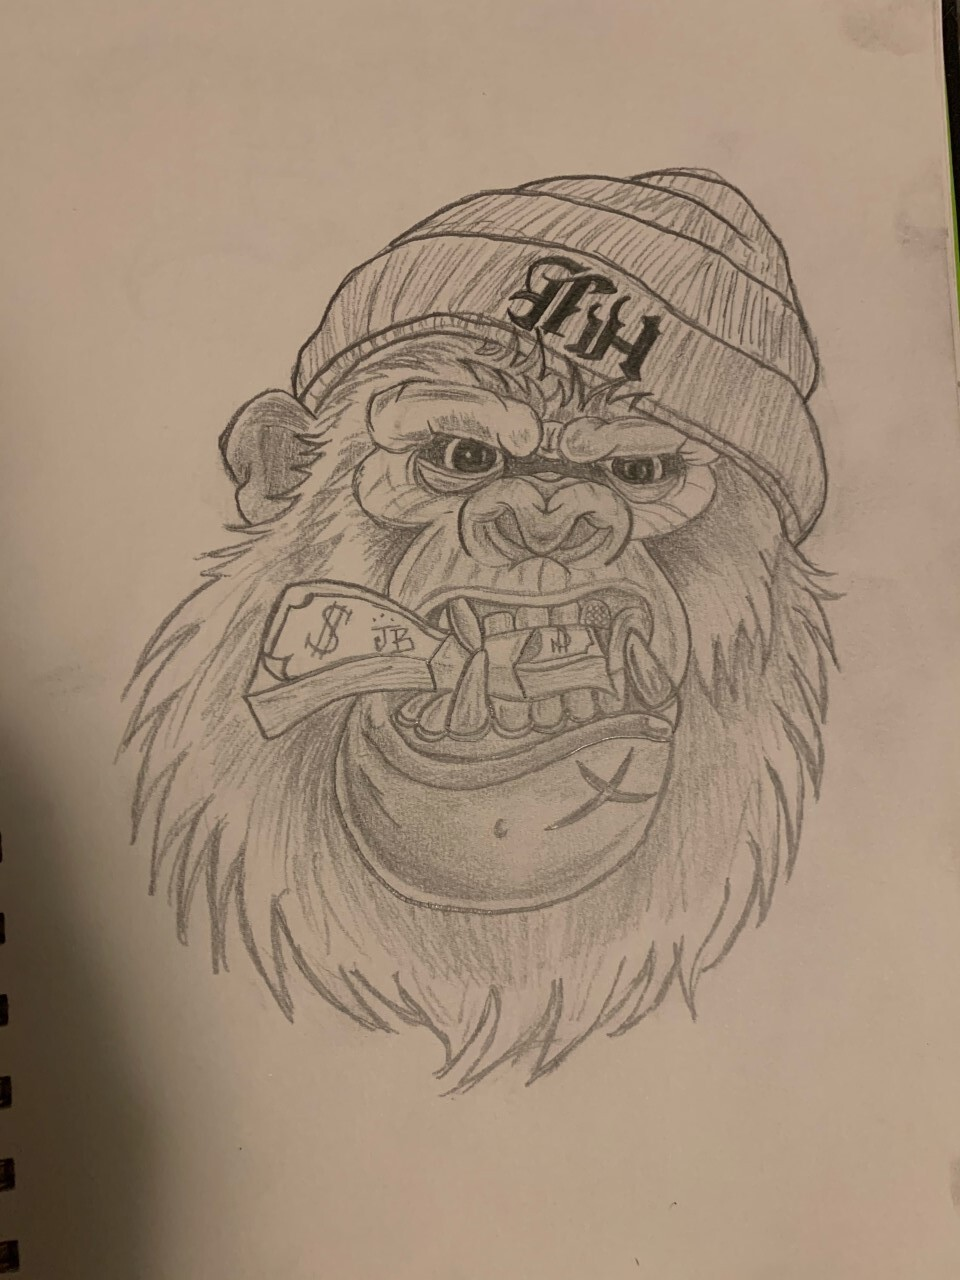 Amyah Moore-Allen's drawing of a gorilla eating cash